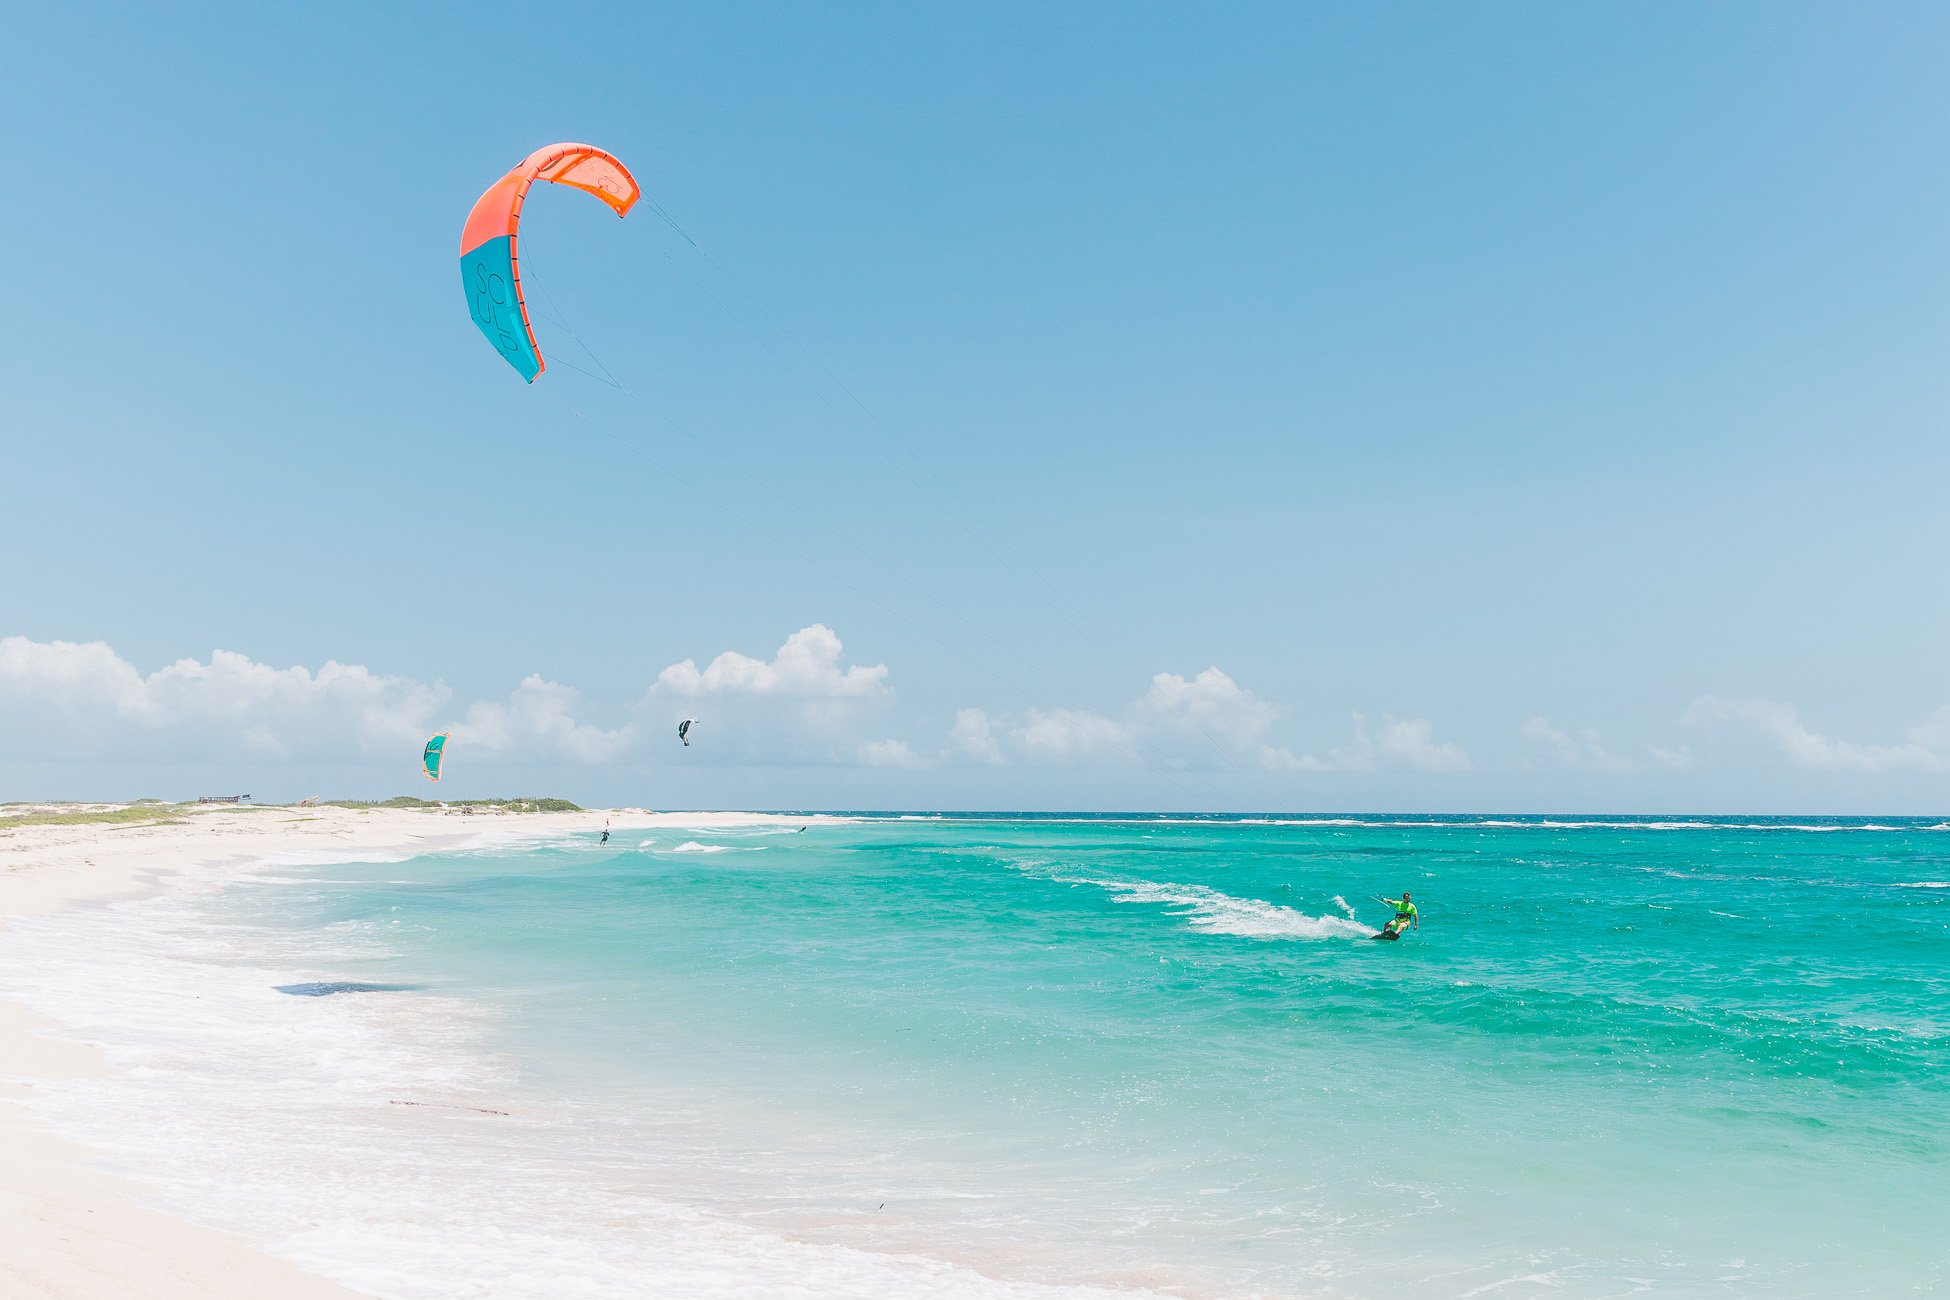 Kitesurfer at Boca Grandi Beach Aruba